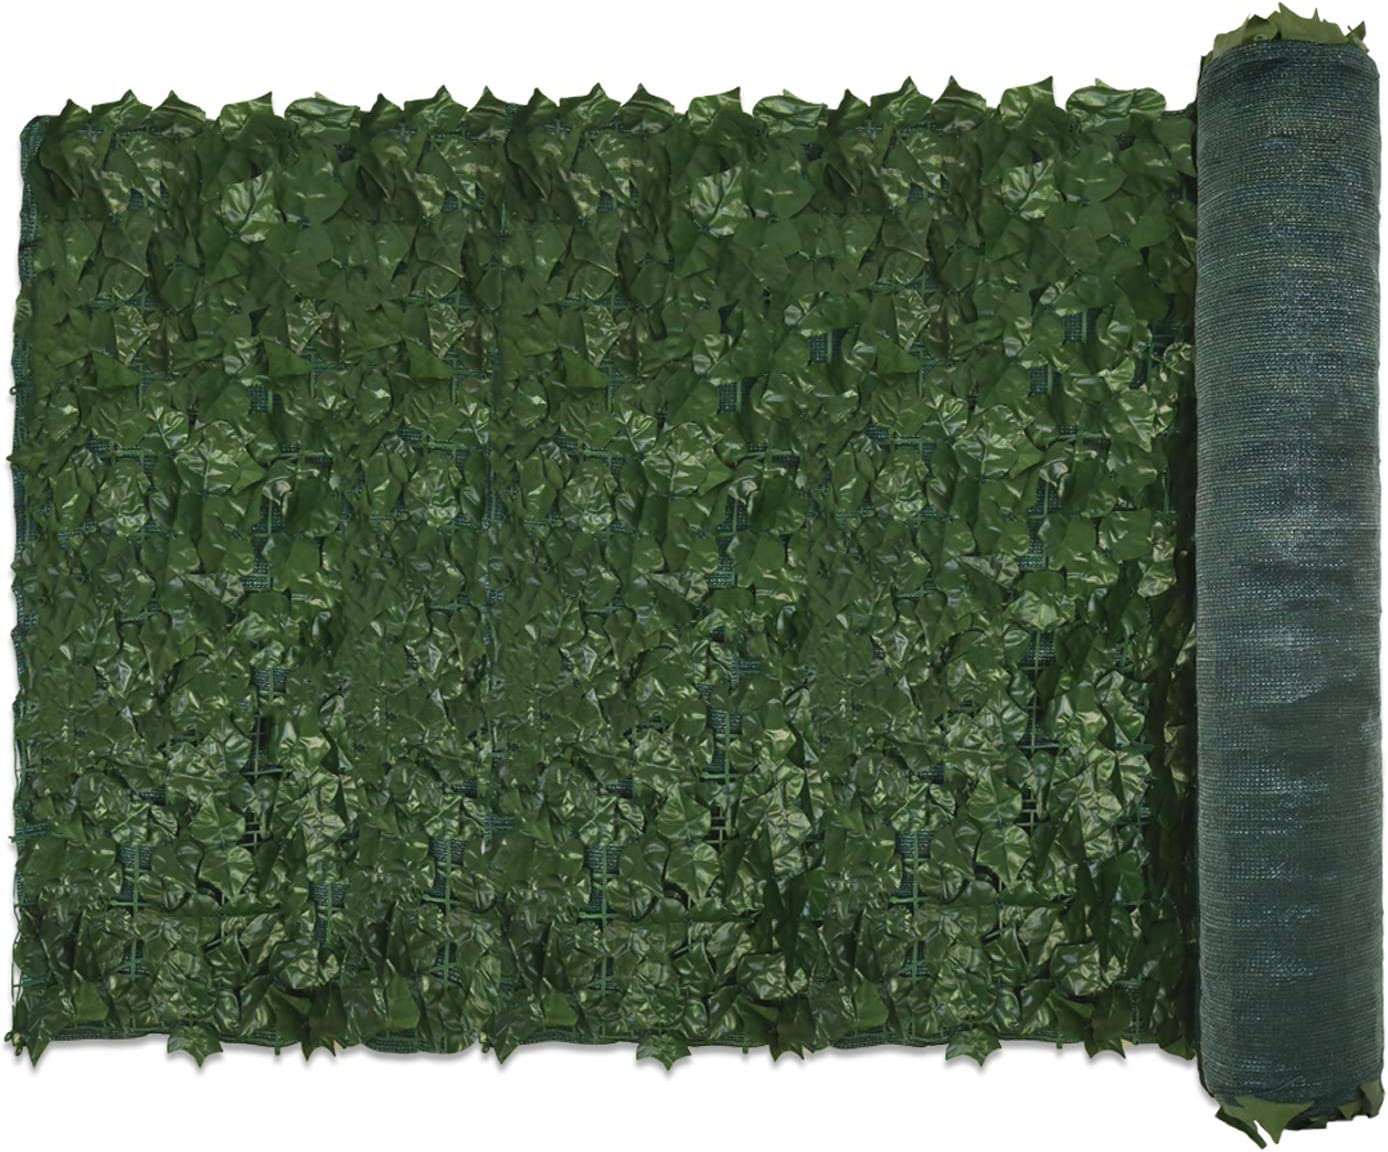 """E&K Sunrise 39"""" x 97"""" Faux Ivy Privacy Fence Screen with Mesh Back-Artificial Leaf Vine Hedge Outdoor Decor-Garden Backyard Decoration Panels Fence Cover - Set of 1"""